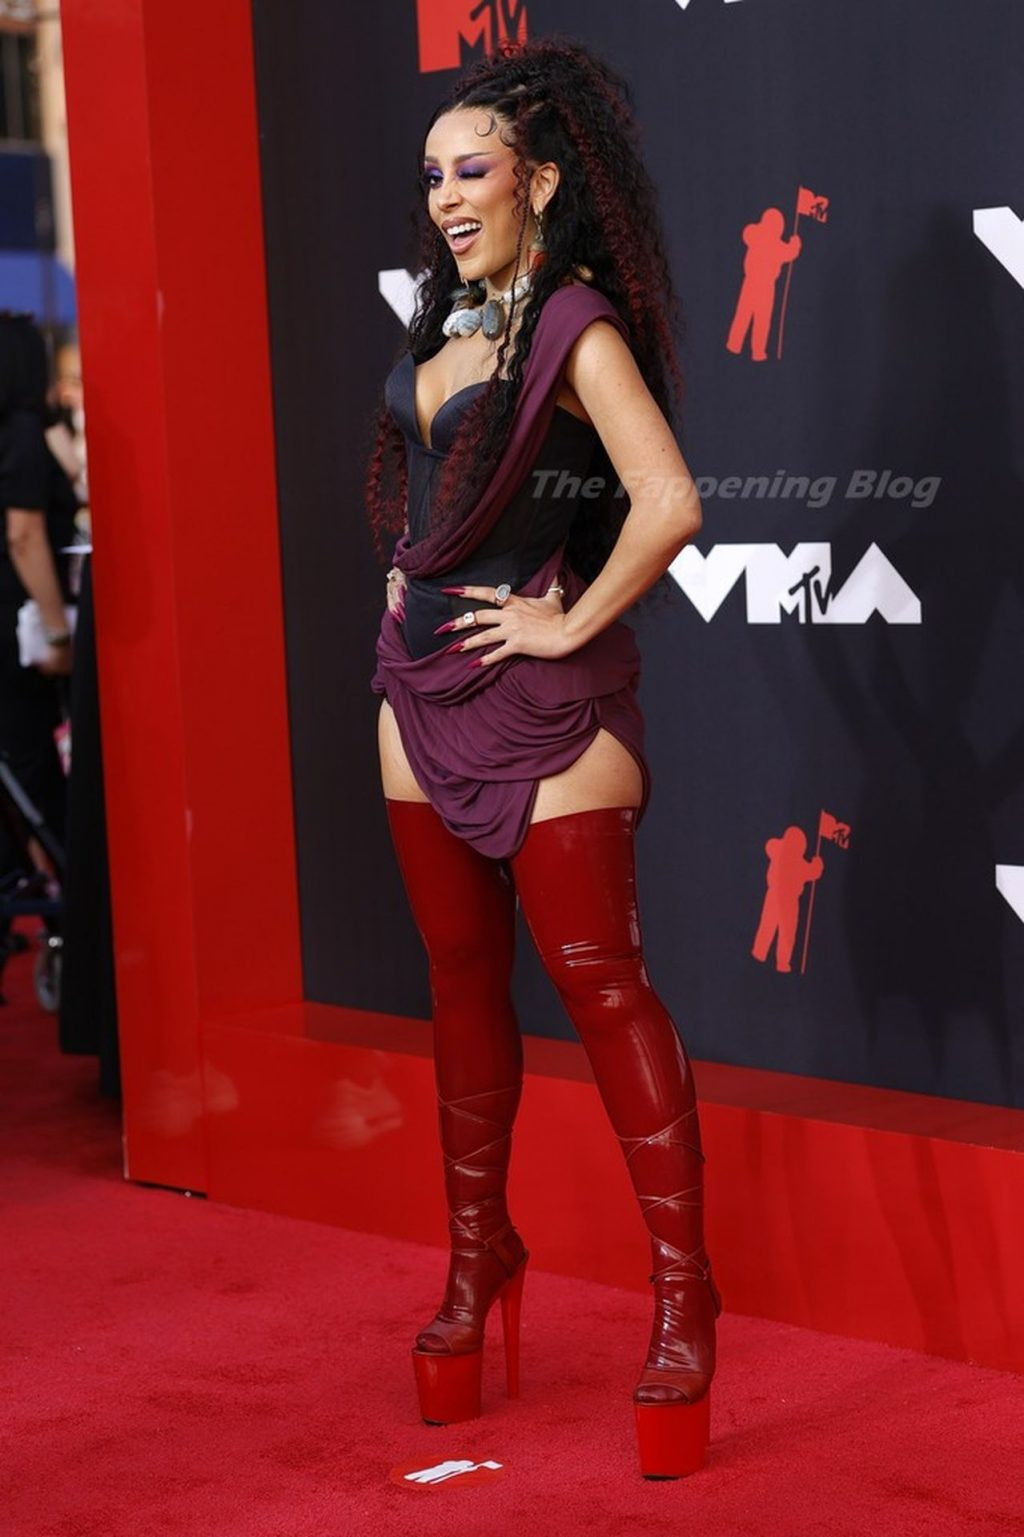 Doja Cat Poses on the Red Carpet at the 38th Annual MTV Video Music Awards (20 Photos)